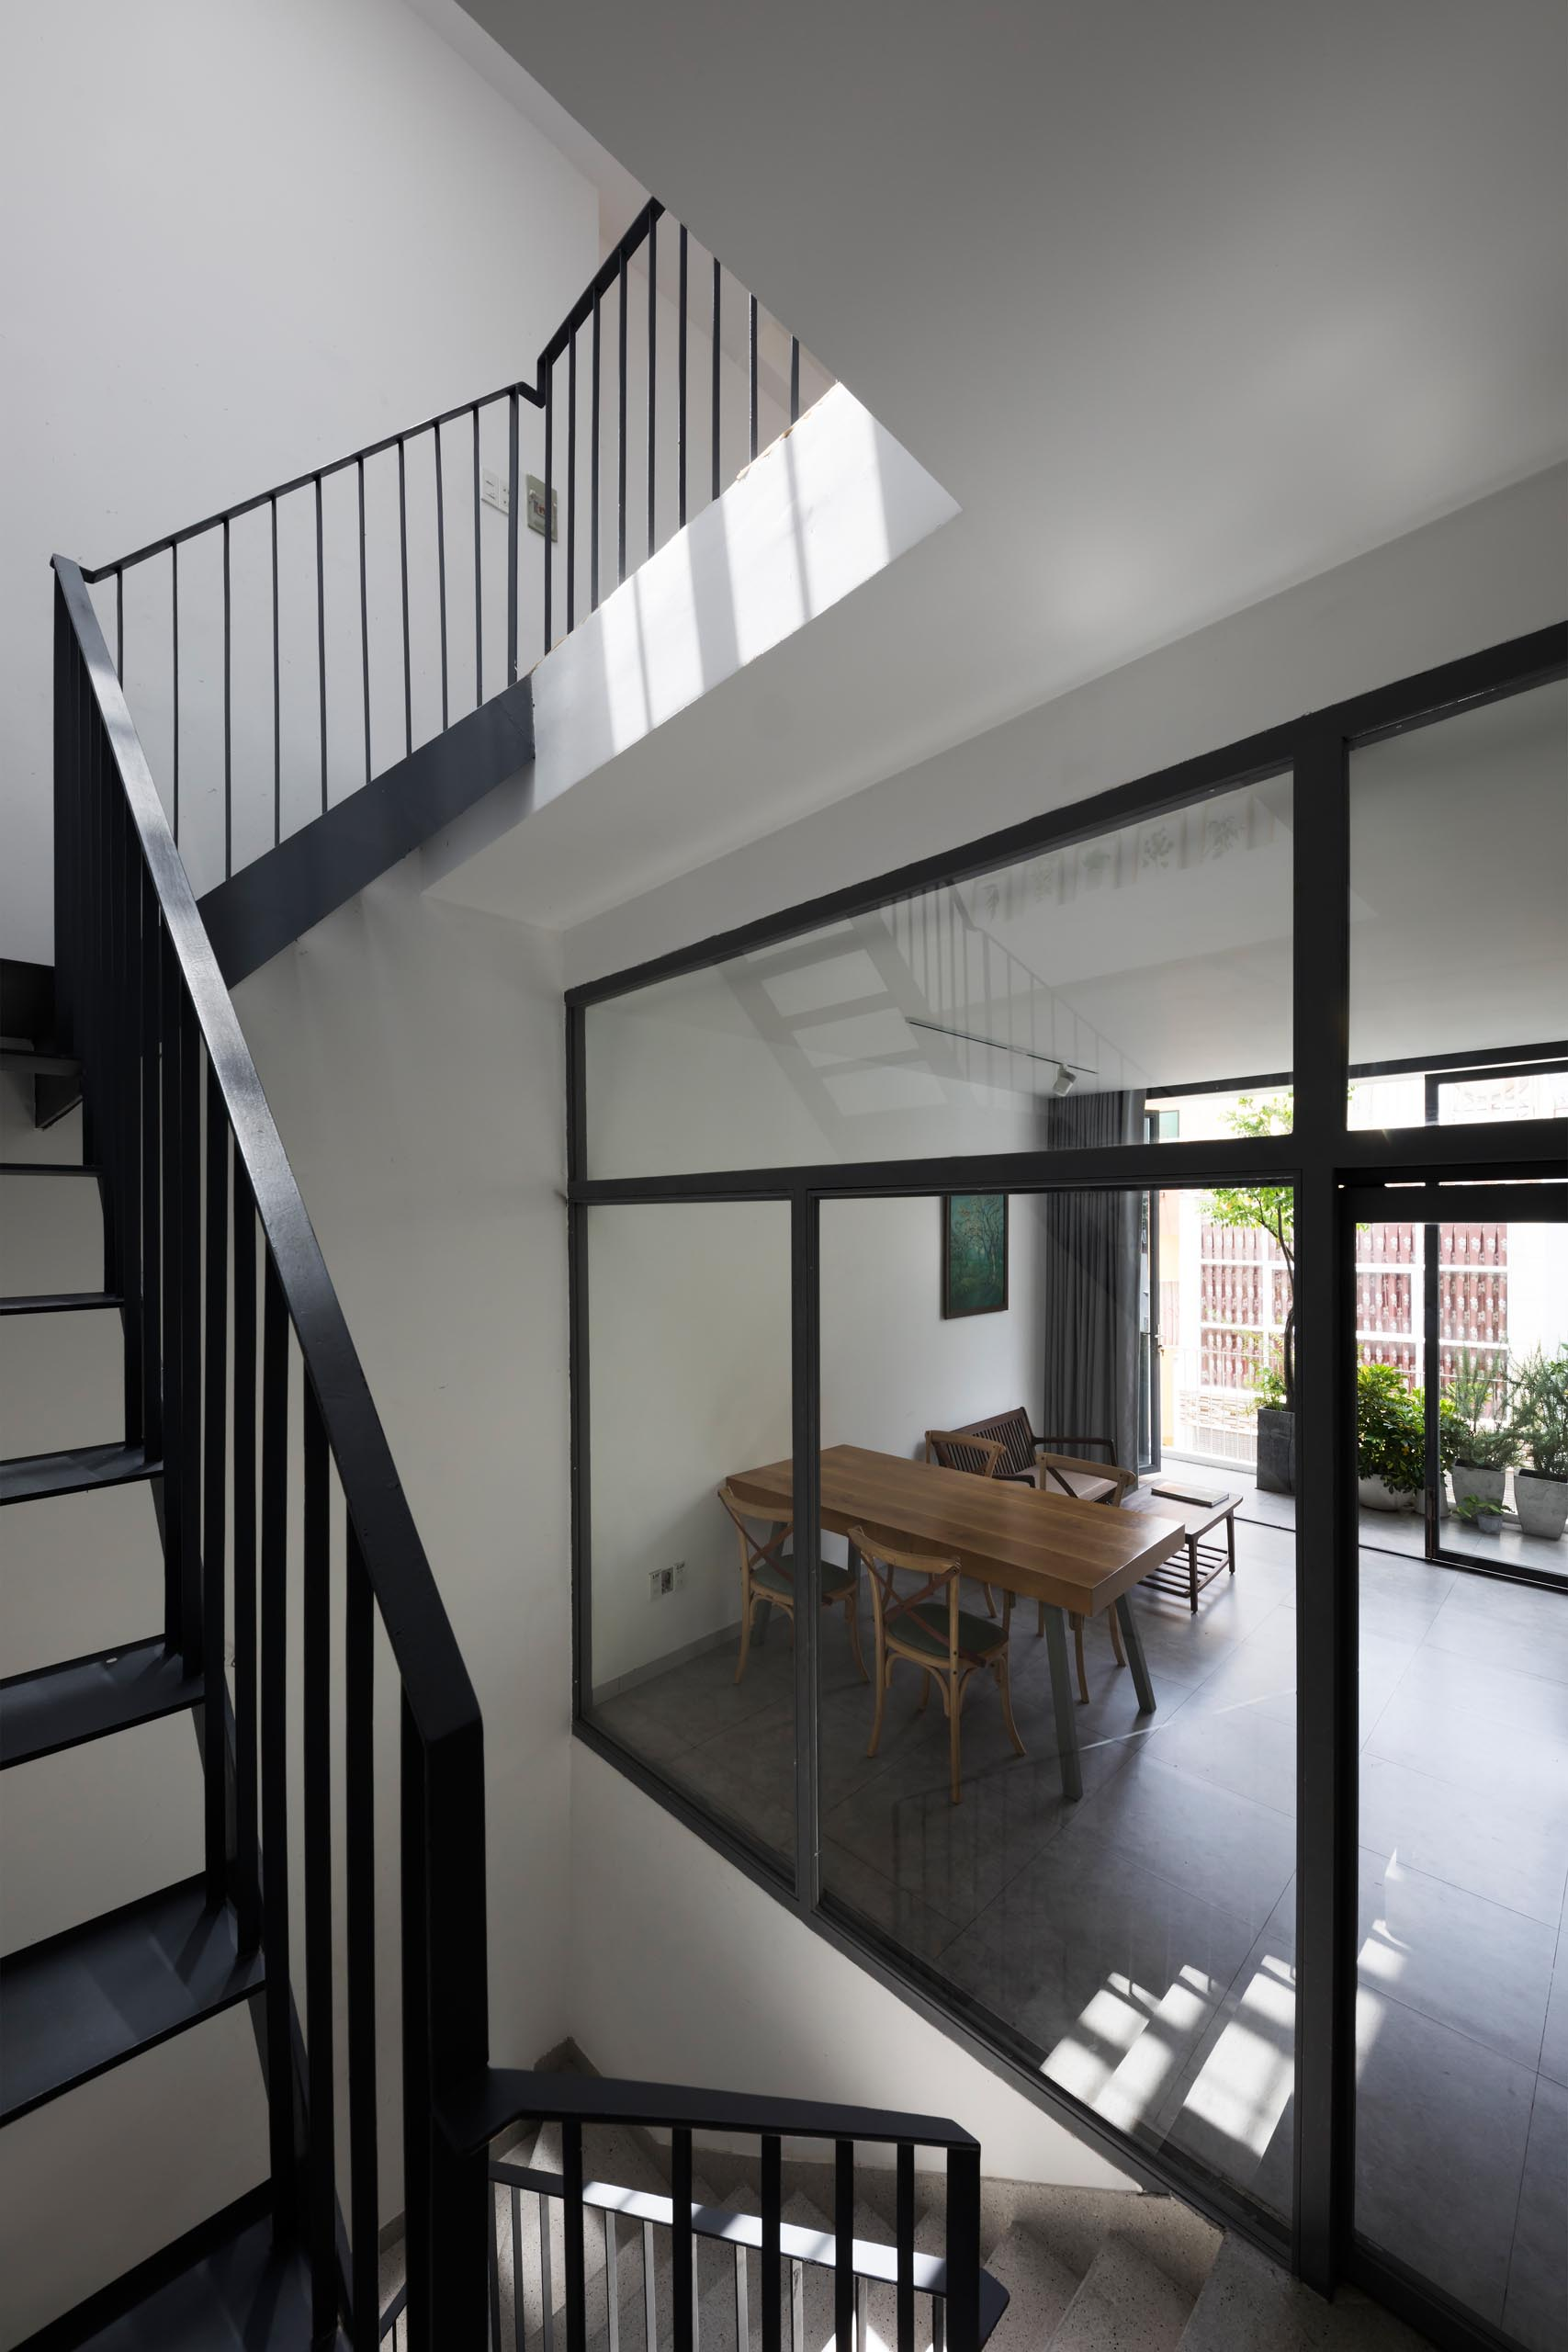 A modern home with black steel stairs and glass walls.